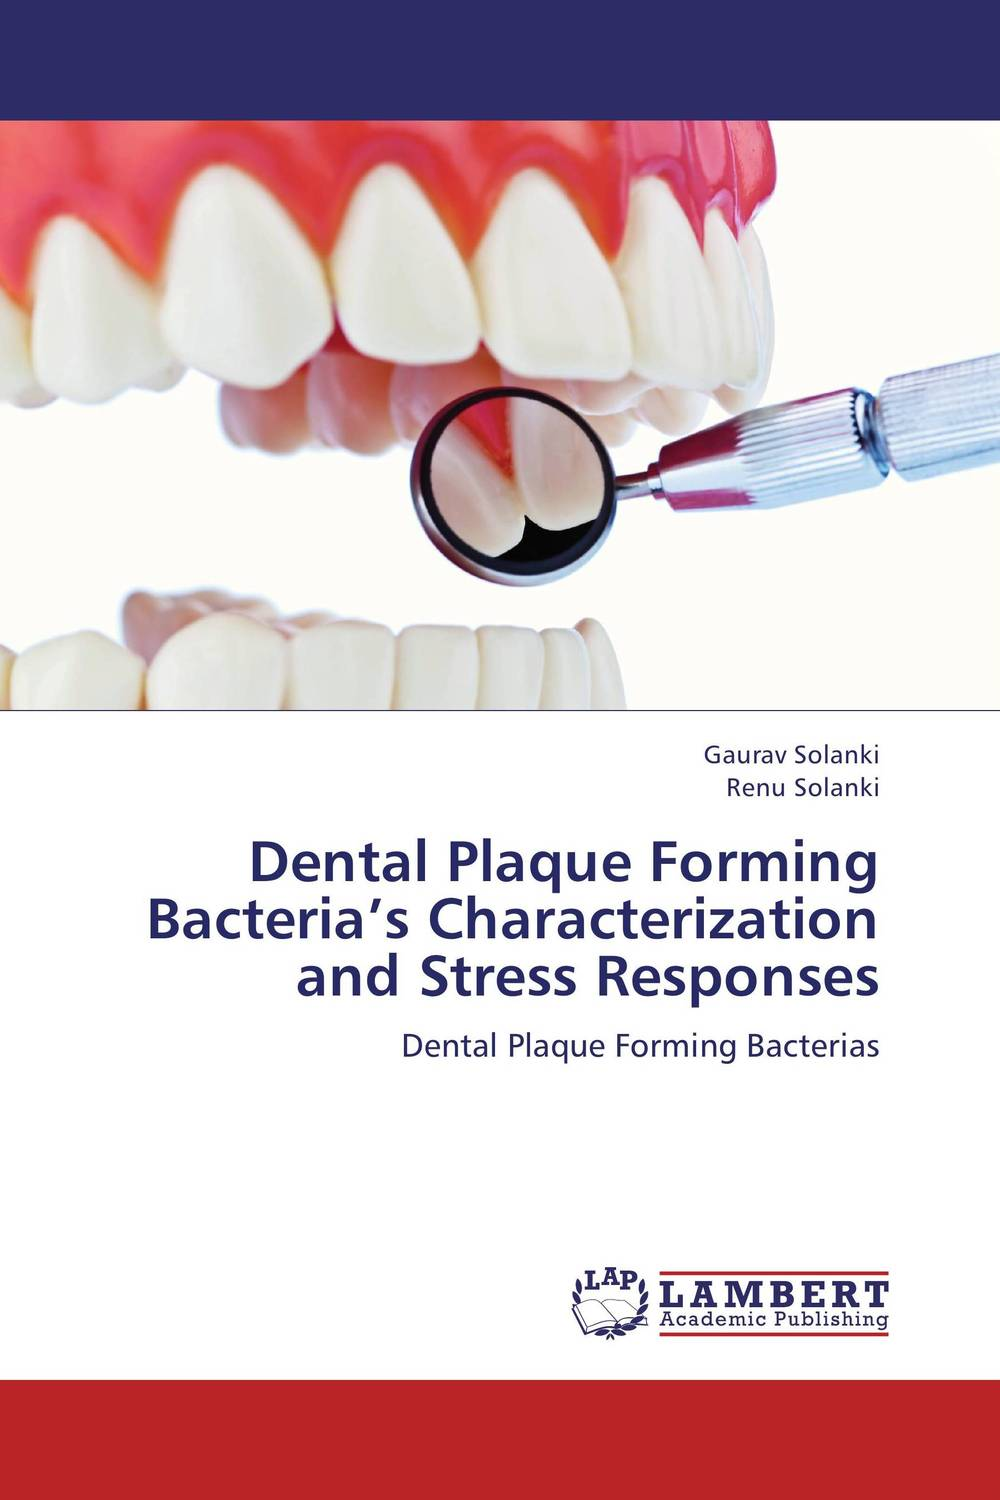 Dental Plaque Forming Bacteria's Characterization and Stress Responses tapan kumar dutta and parimal roychoudhury diagnosis and characterization of bacterial pathogens in animal